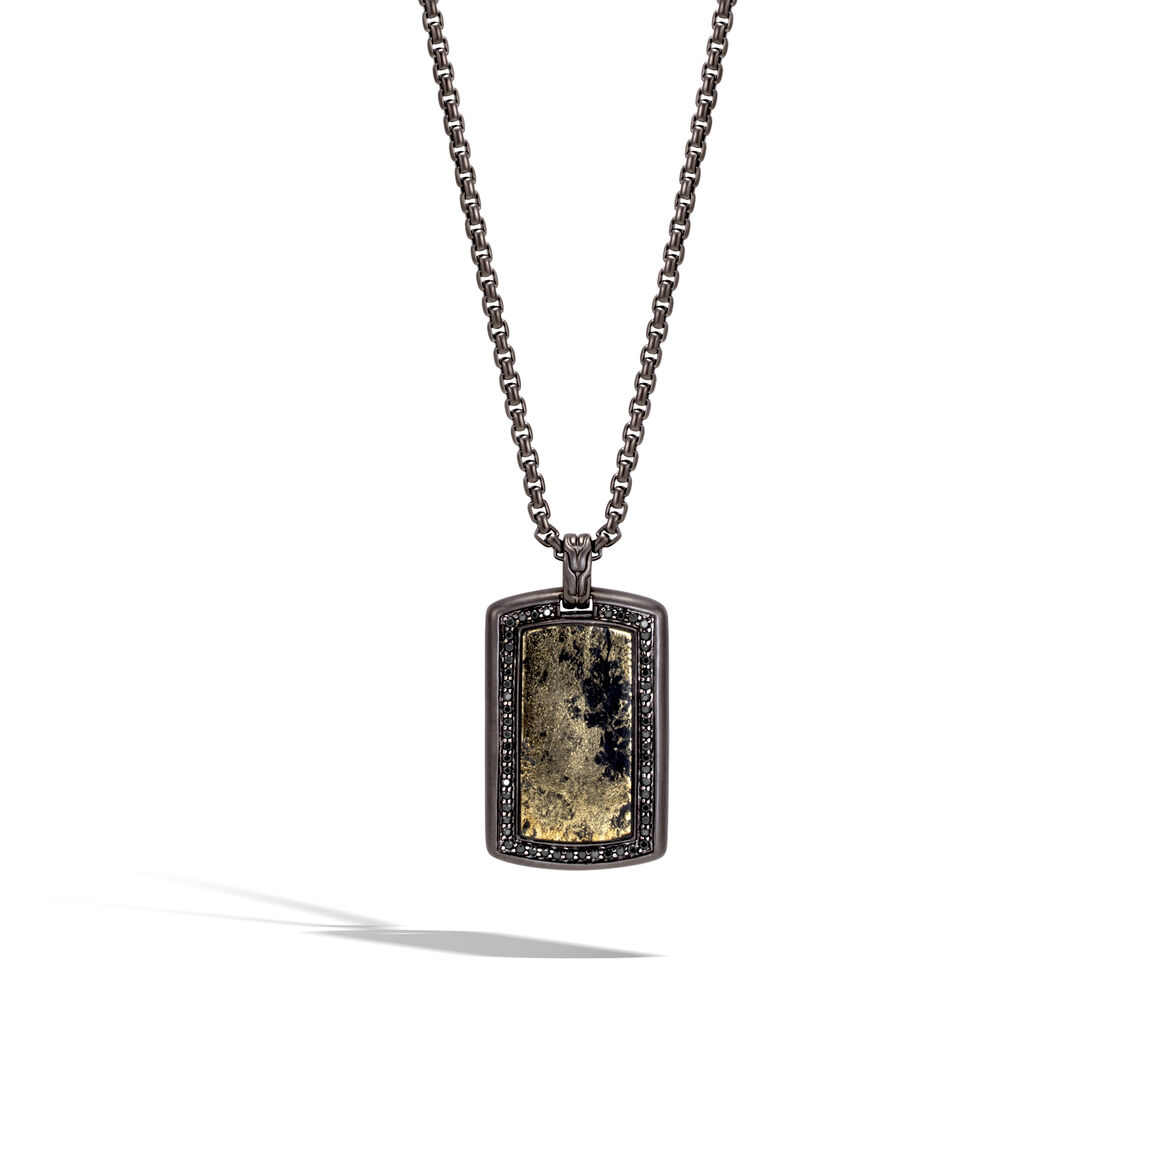 Classic Chain Dog Tag Necklace in Blackened Silver, Gemstone